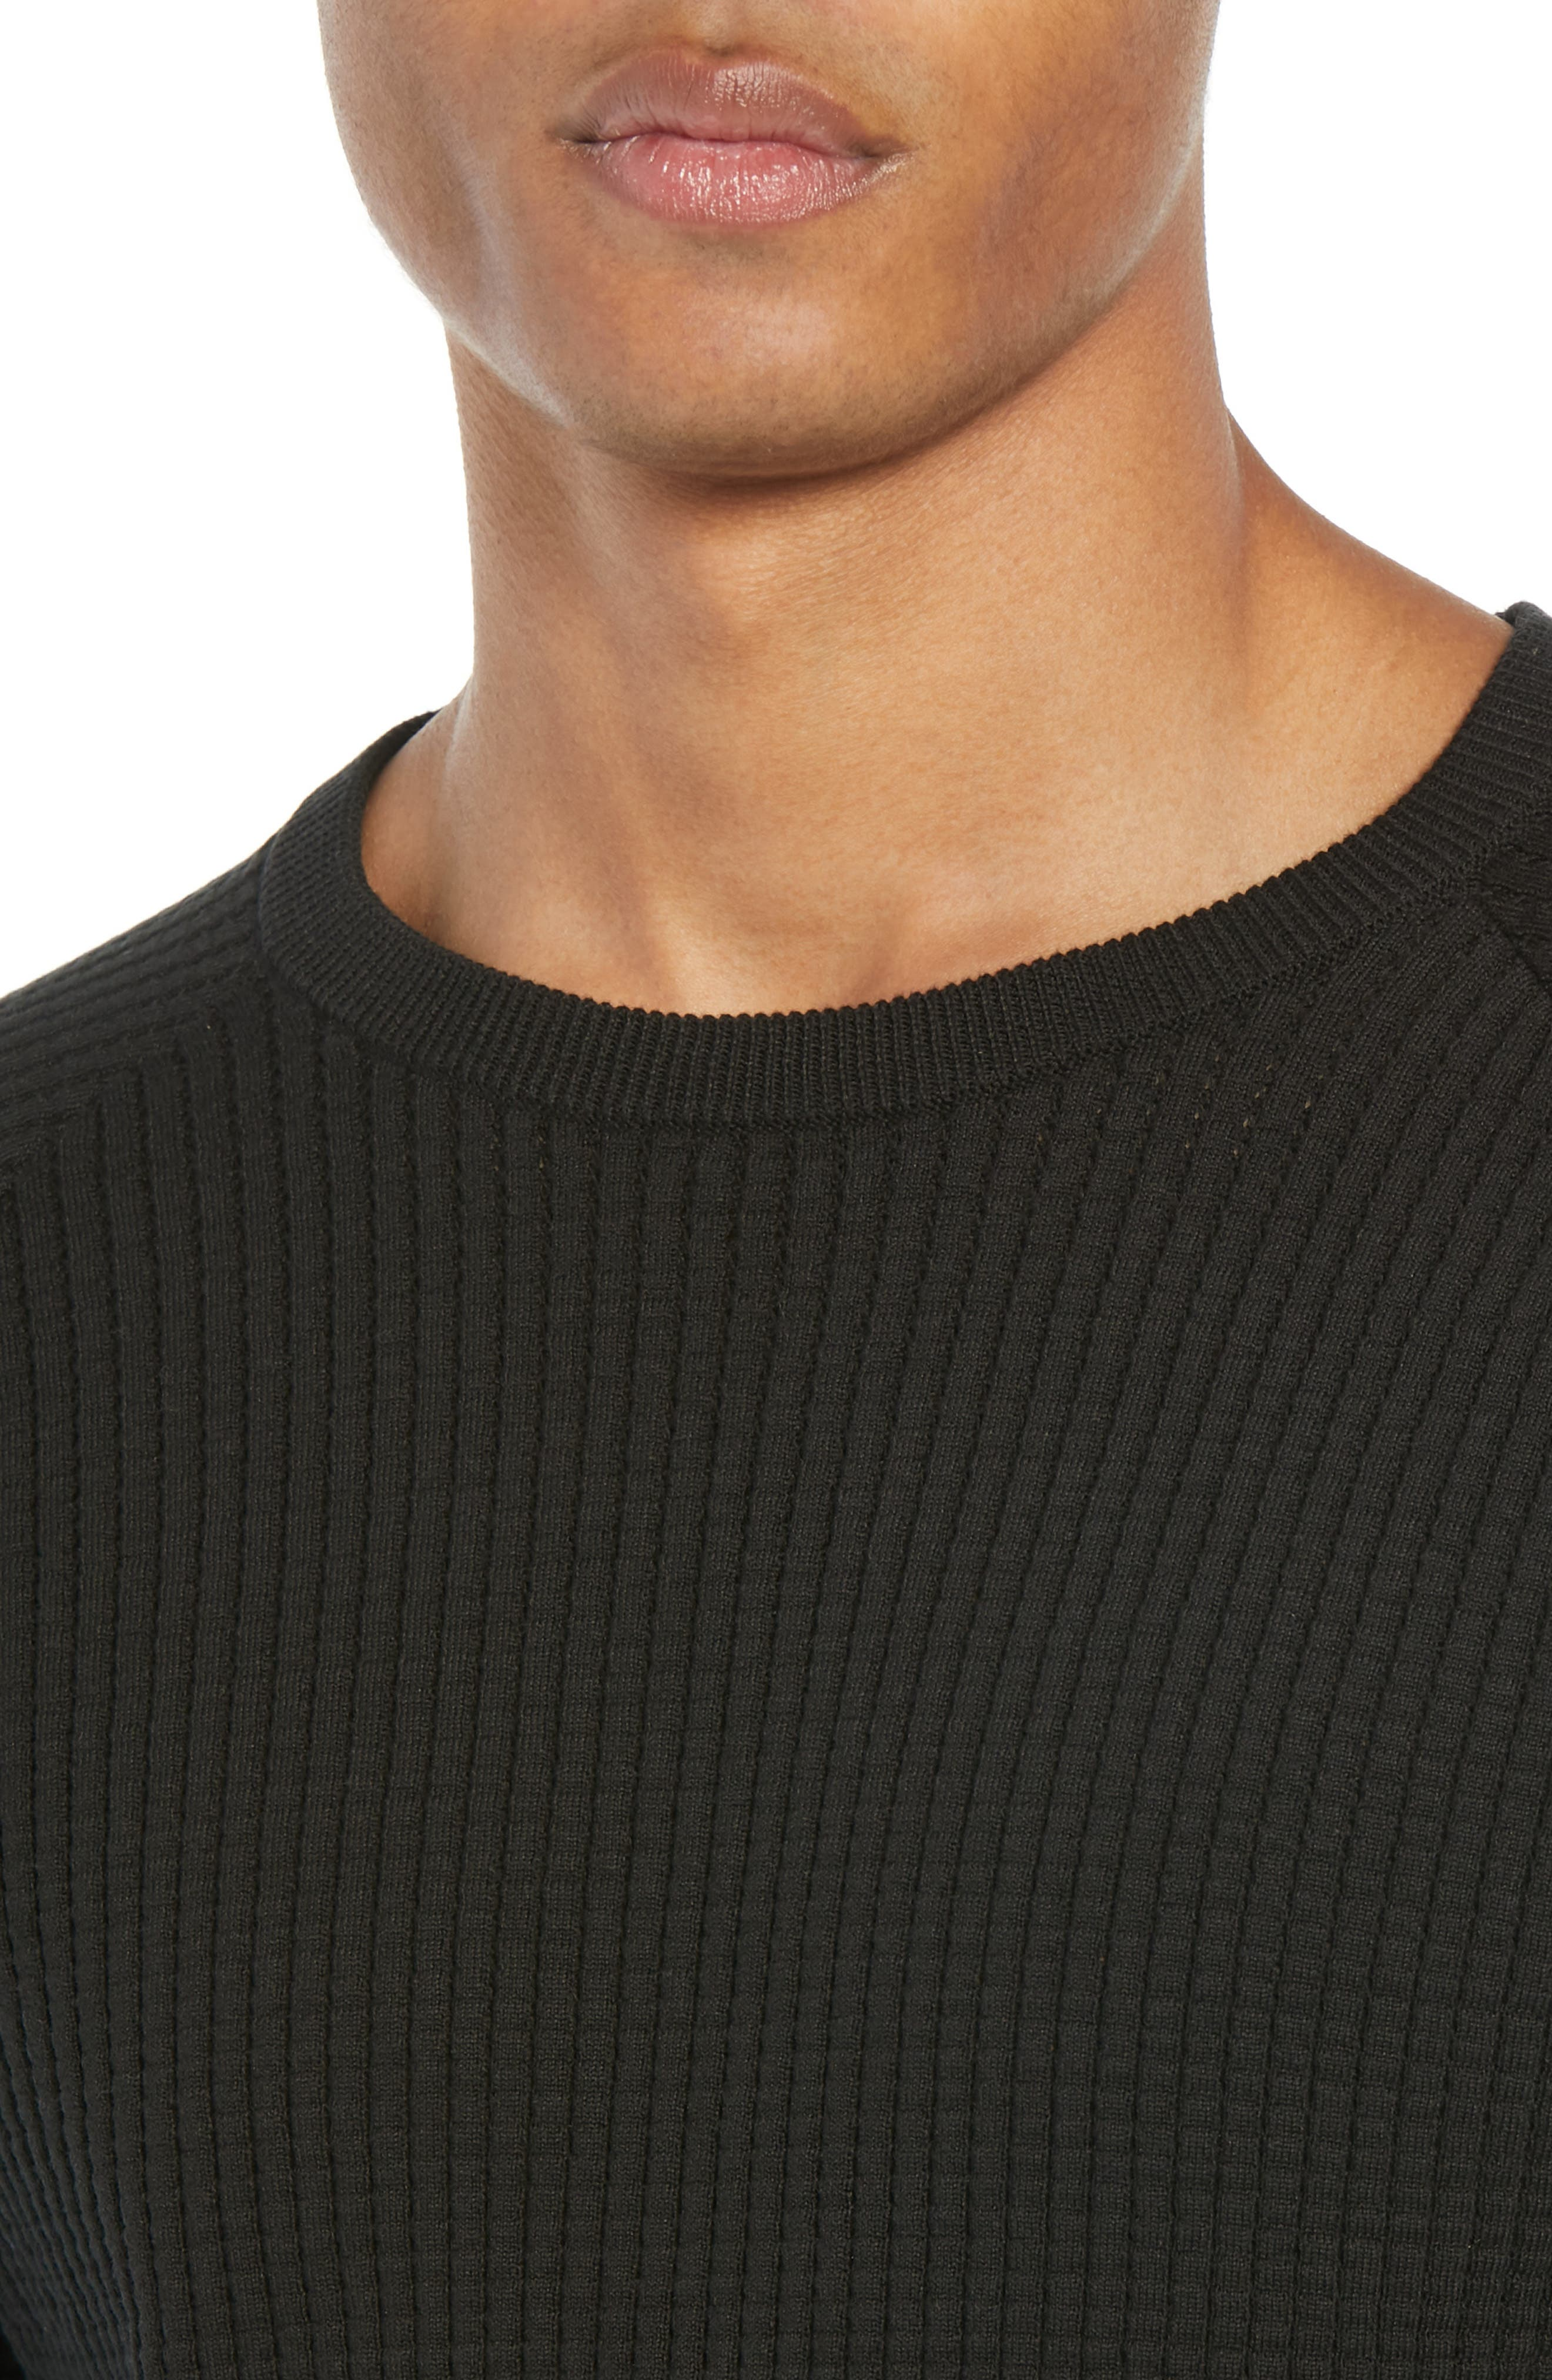 Amadeo Regular Fit Textured Cotton Sweater,                             Alternate thumbnail 4, color,                             BLACK